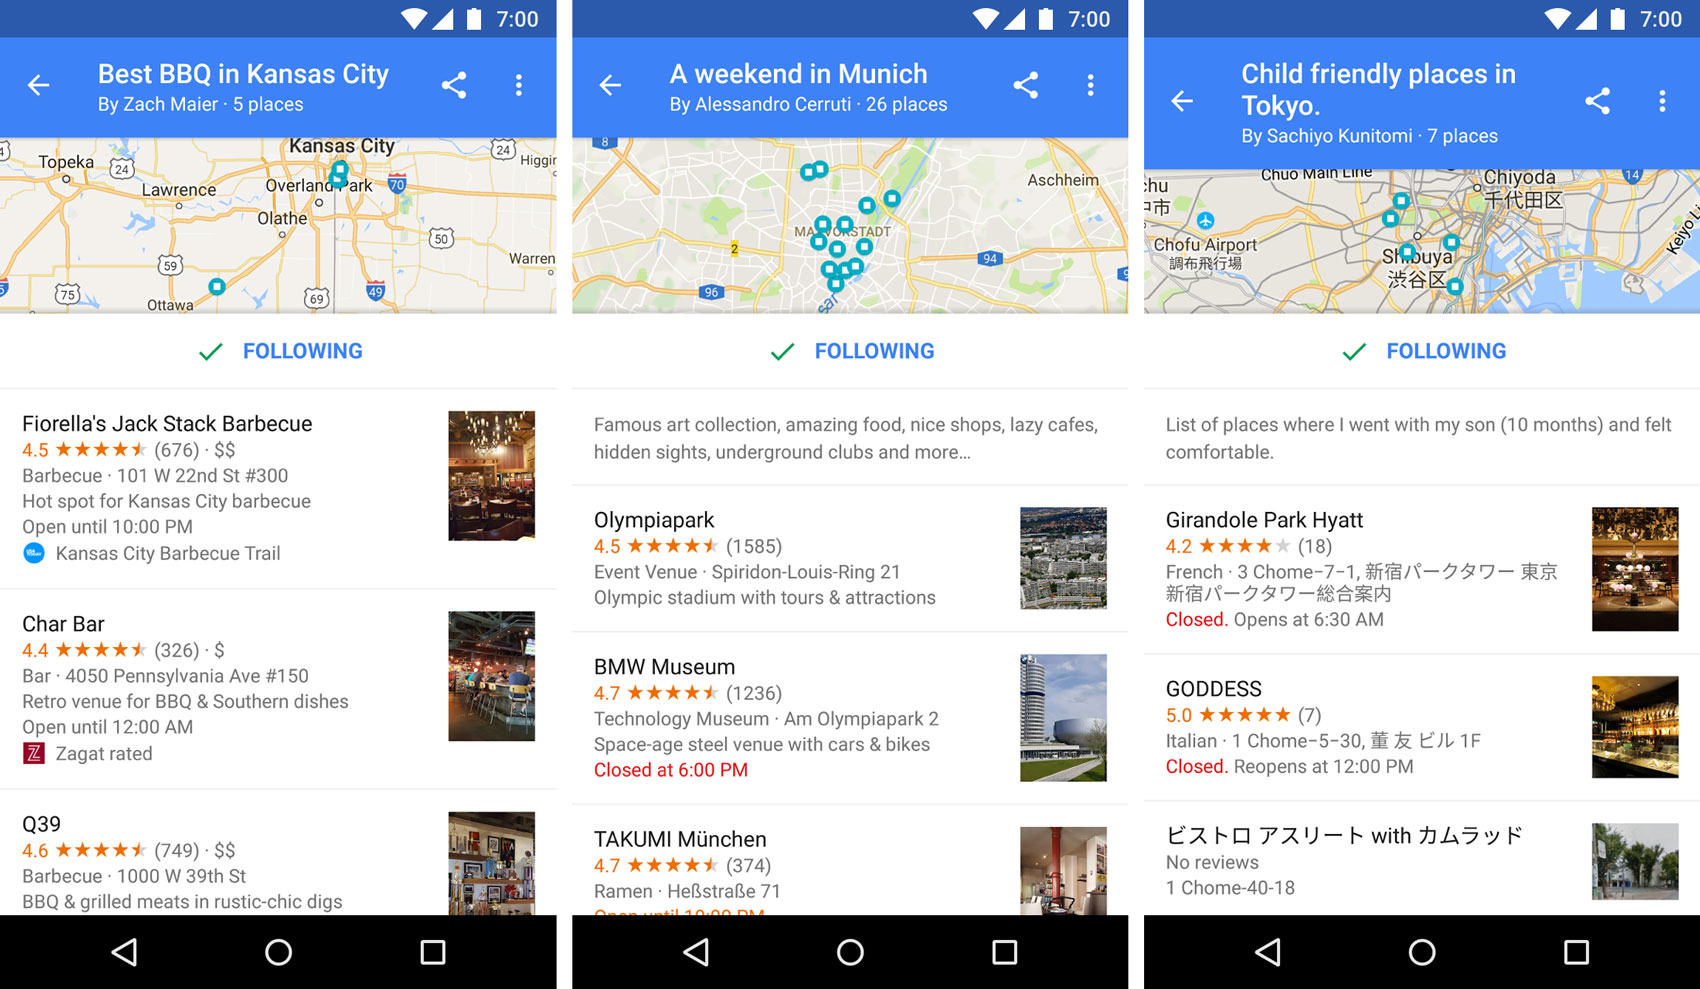 Google Maps adds Lists to create, share, and follow lists of places you want to go.